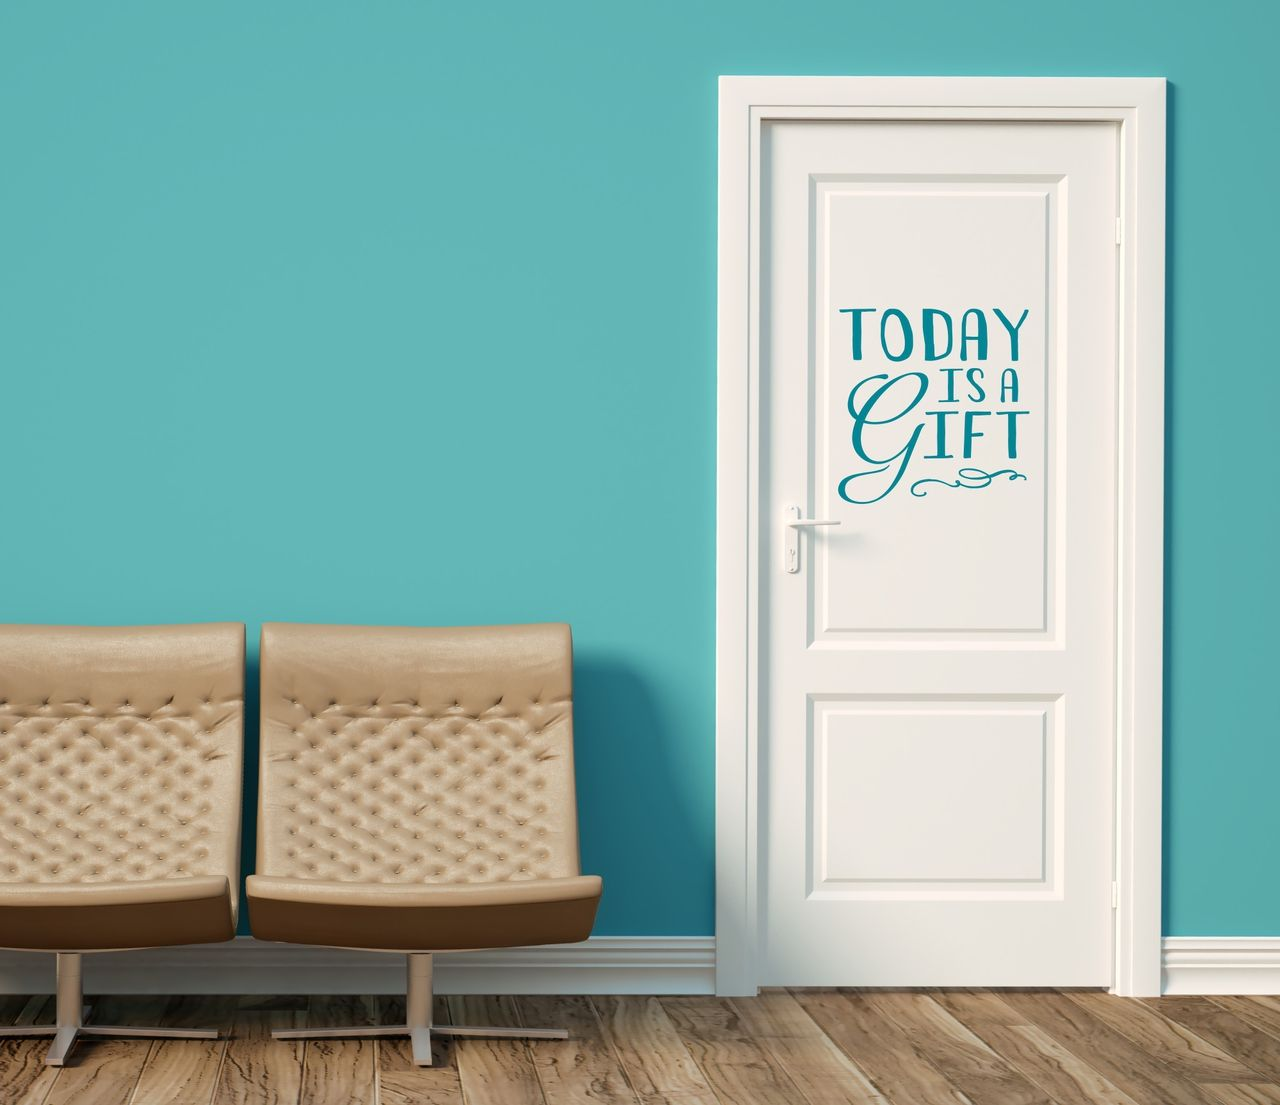 Today is a Gift Inspirational Wall Decal Quote for the Home - Wall Decor Plus More